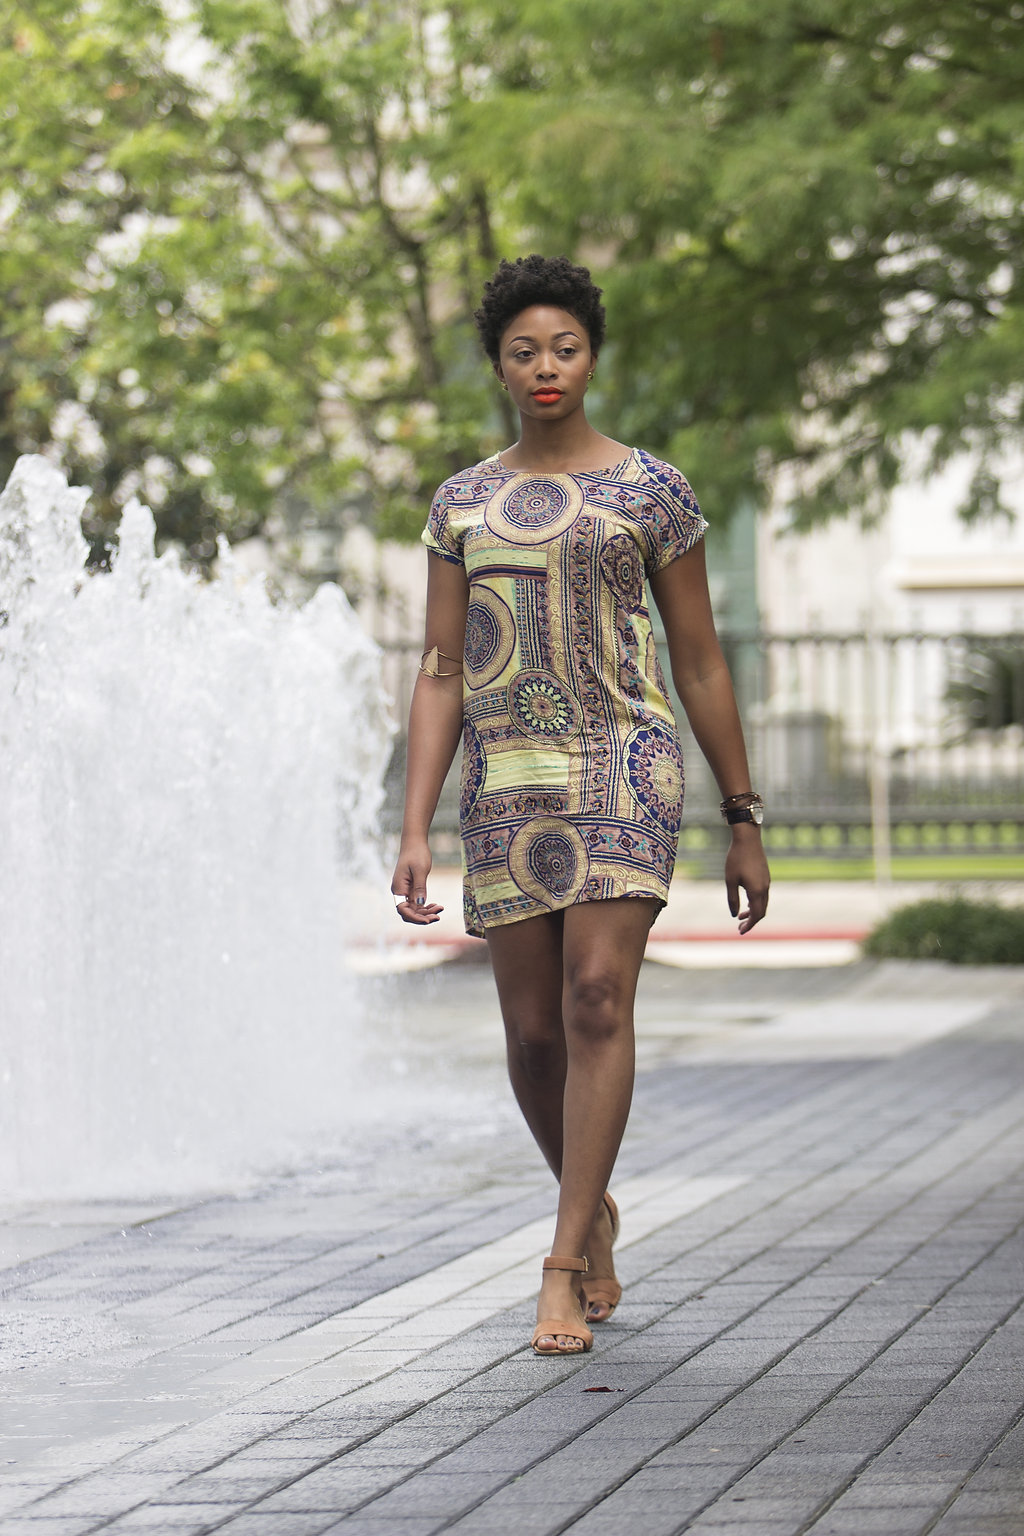 louisiana street style, baton rouge fashion blogger